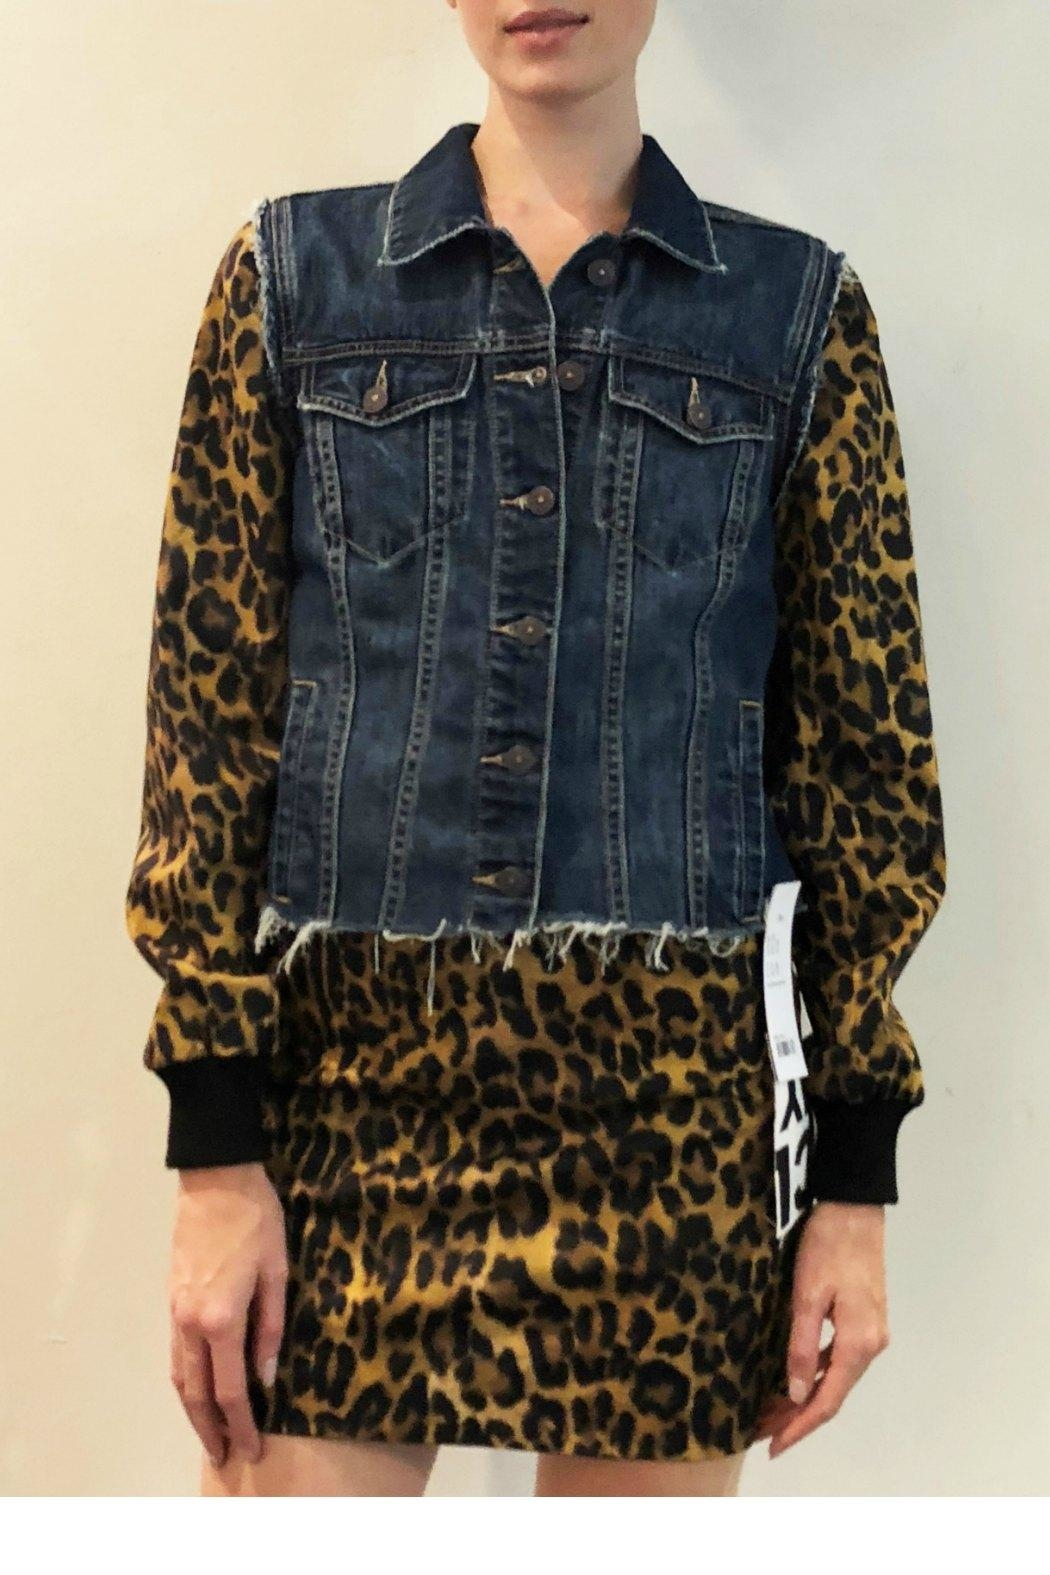 7037de65dc9bbc Nicole Miller Leopard Denim Jacket from New Hampshire by Stiletto ...